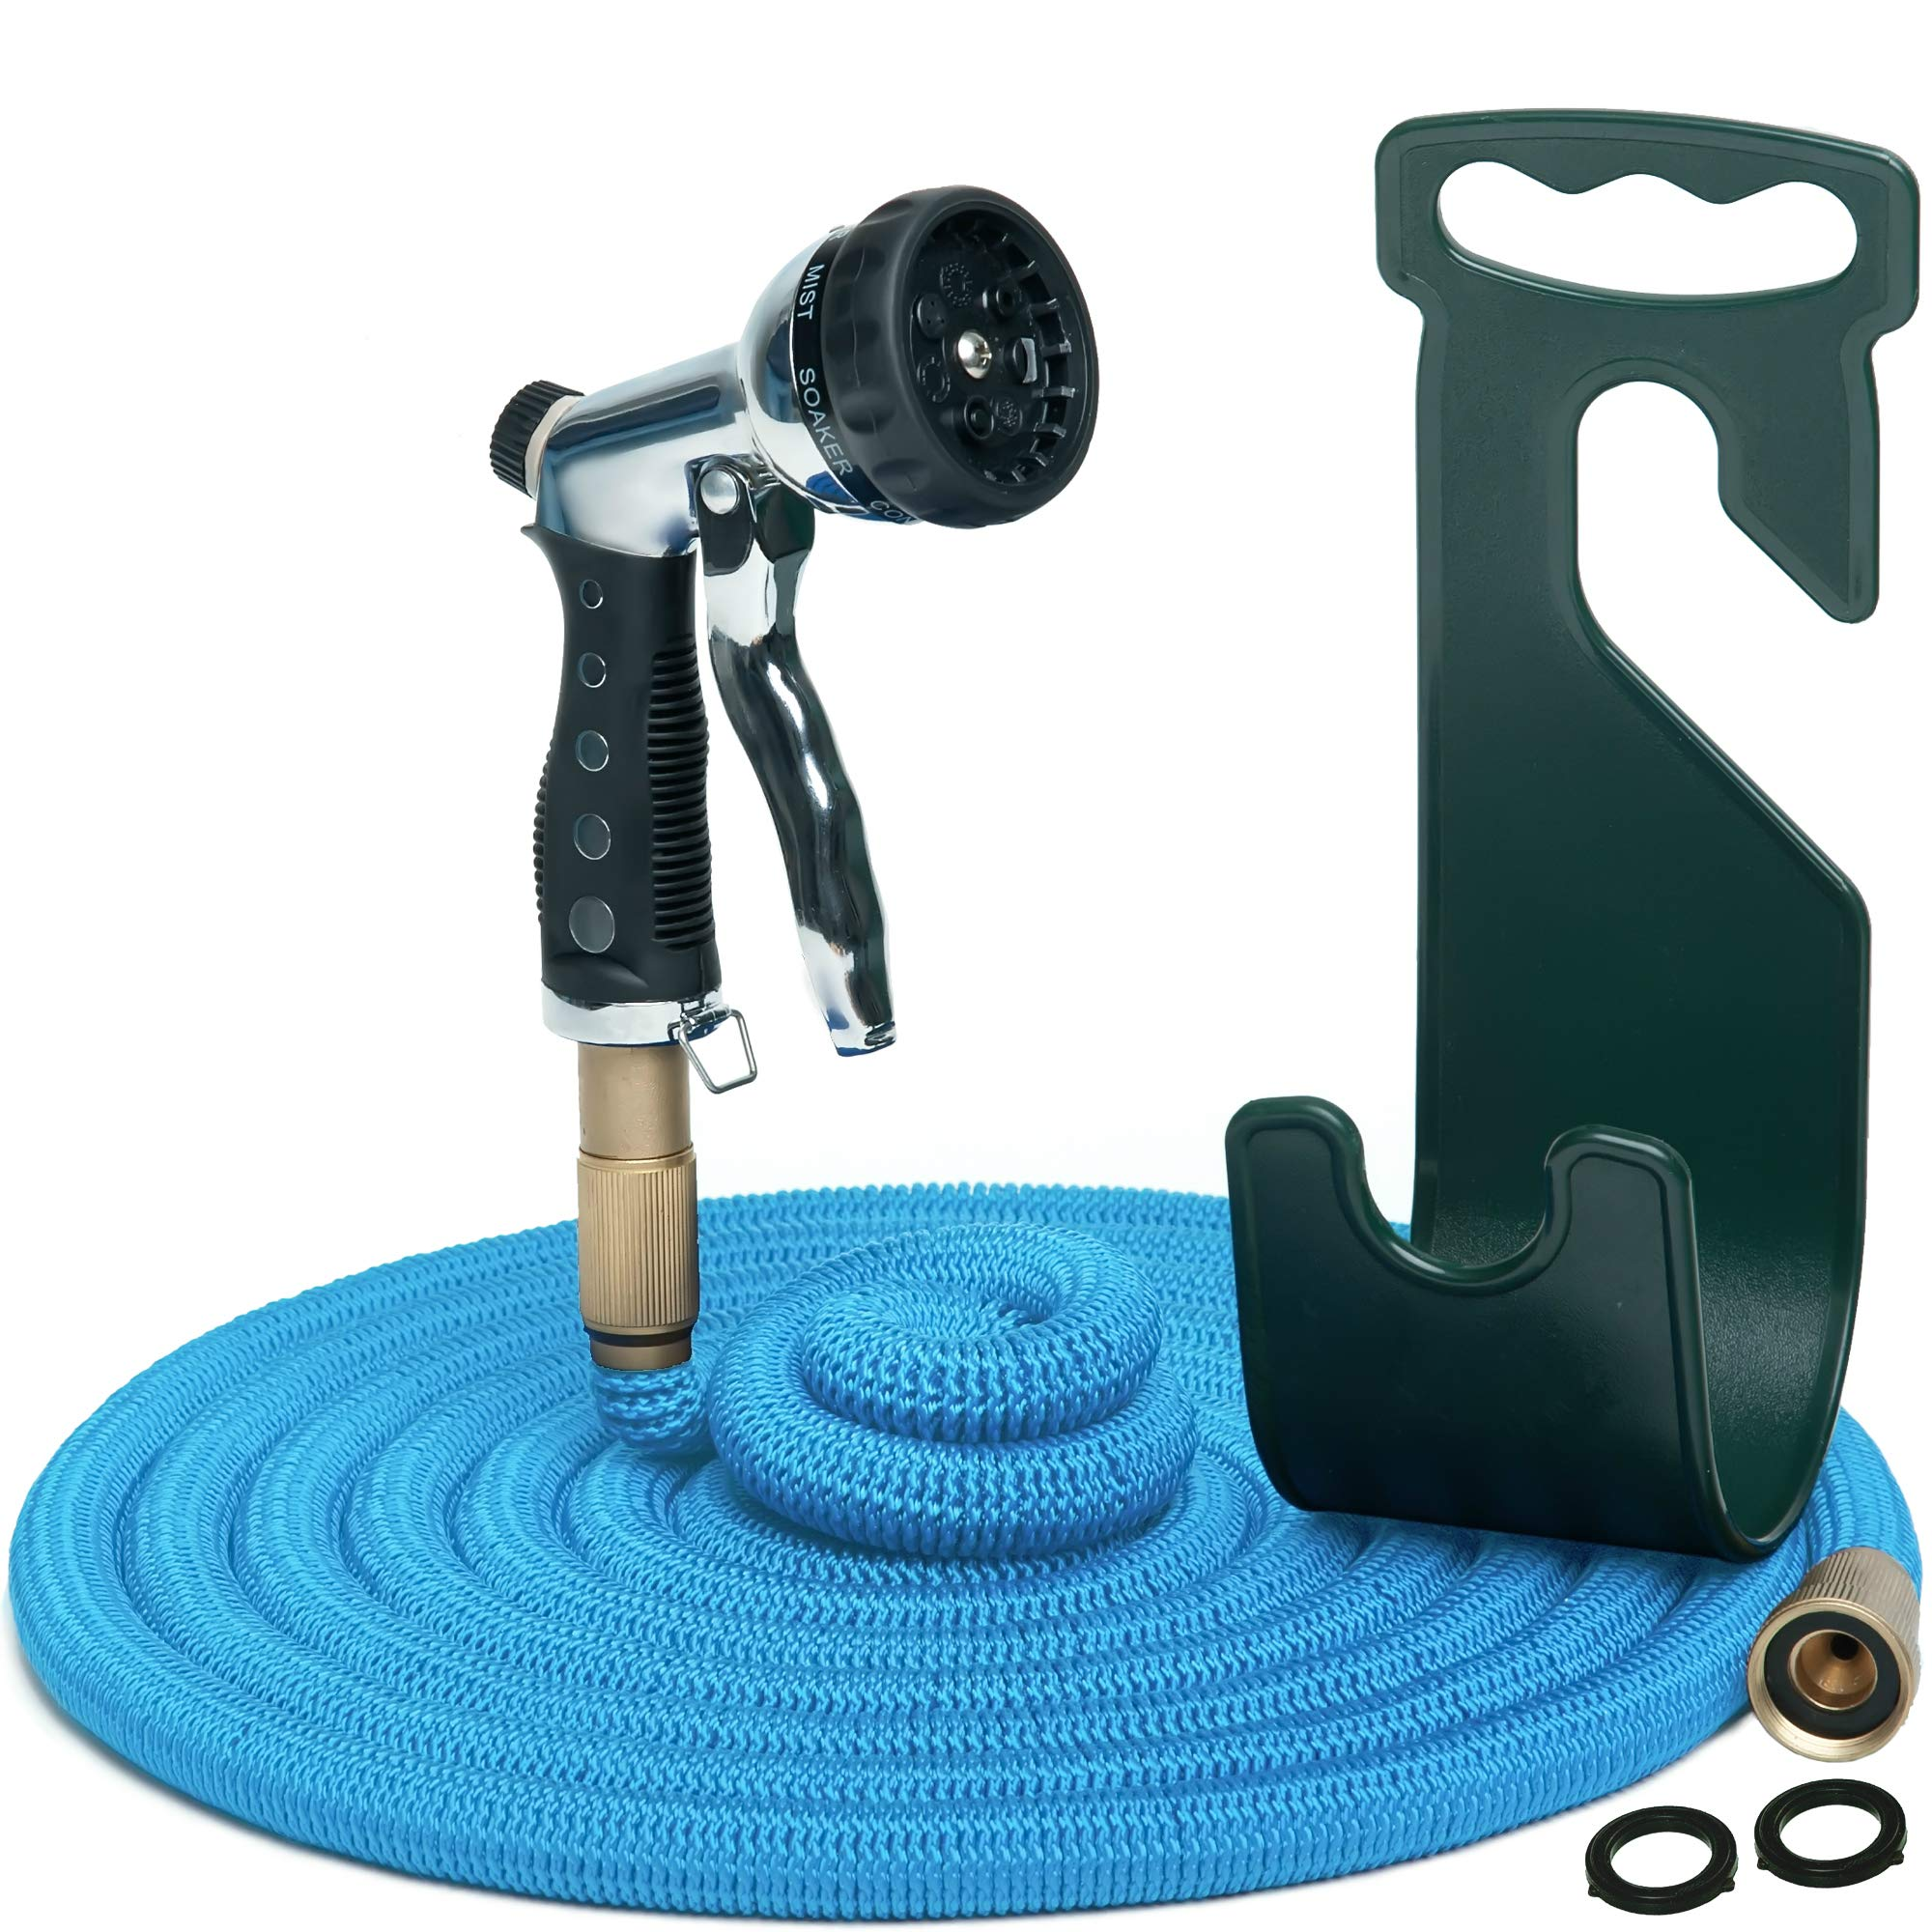 Water Hose – Large Expandable Garden Hose 100 Feet - Hose Holder and High Pressure Washer Hose Spray Nozzle With 7 Settings – Solid Brass Fittings - Heavy Duty Outdoor Kink Free Retractable Flex Hose